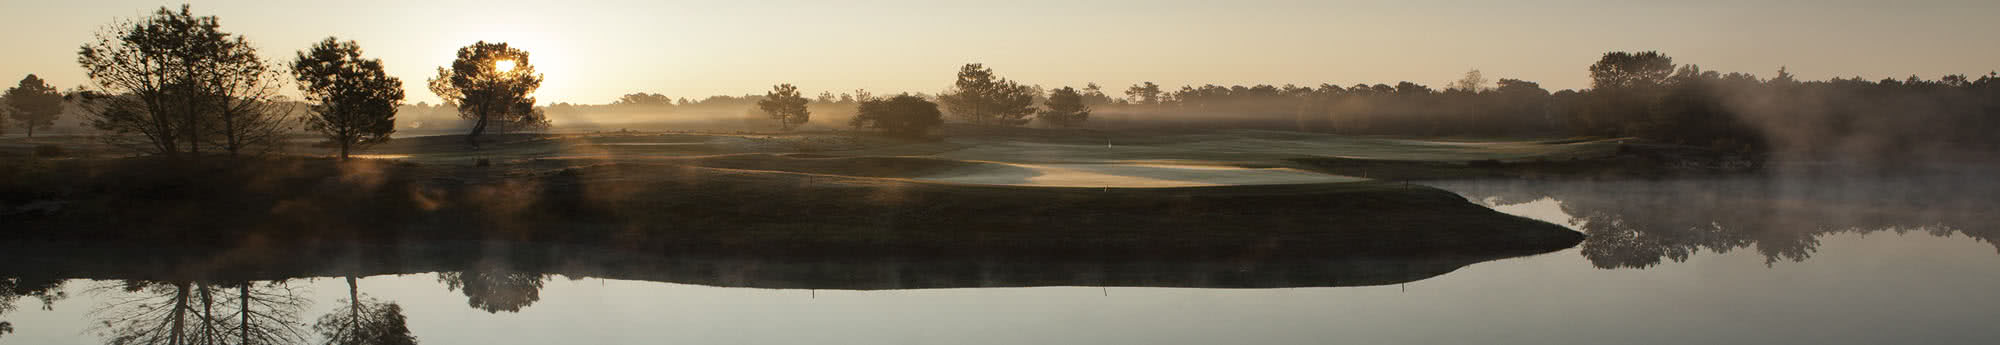 Golf course in the morning with mist and a Sunrise